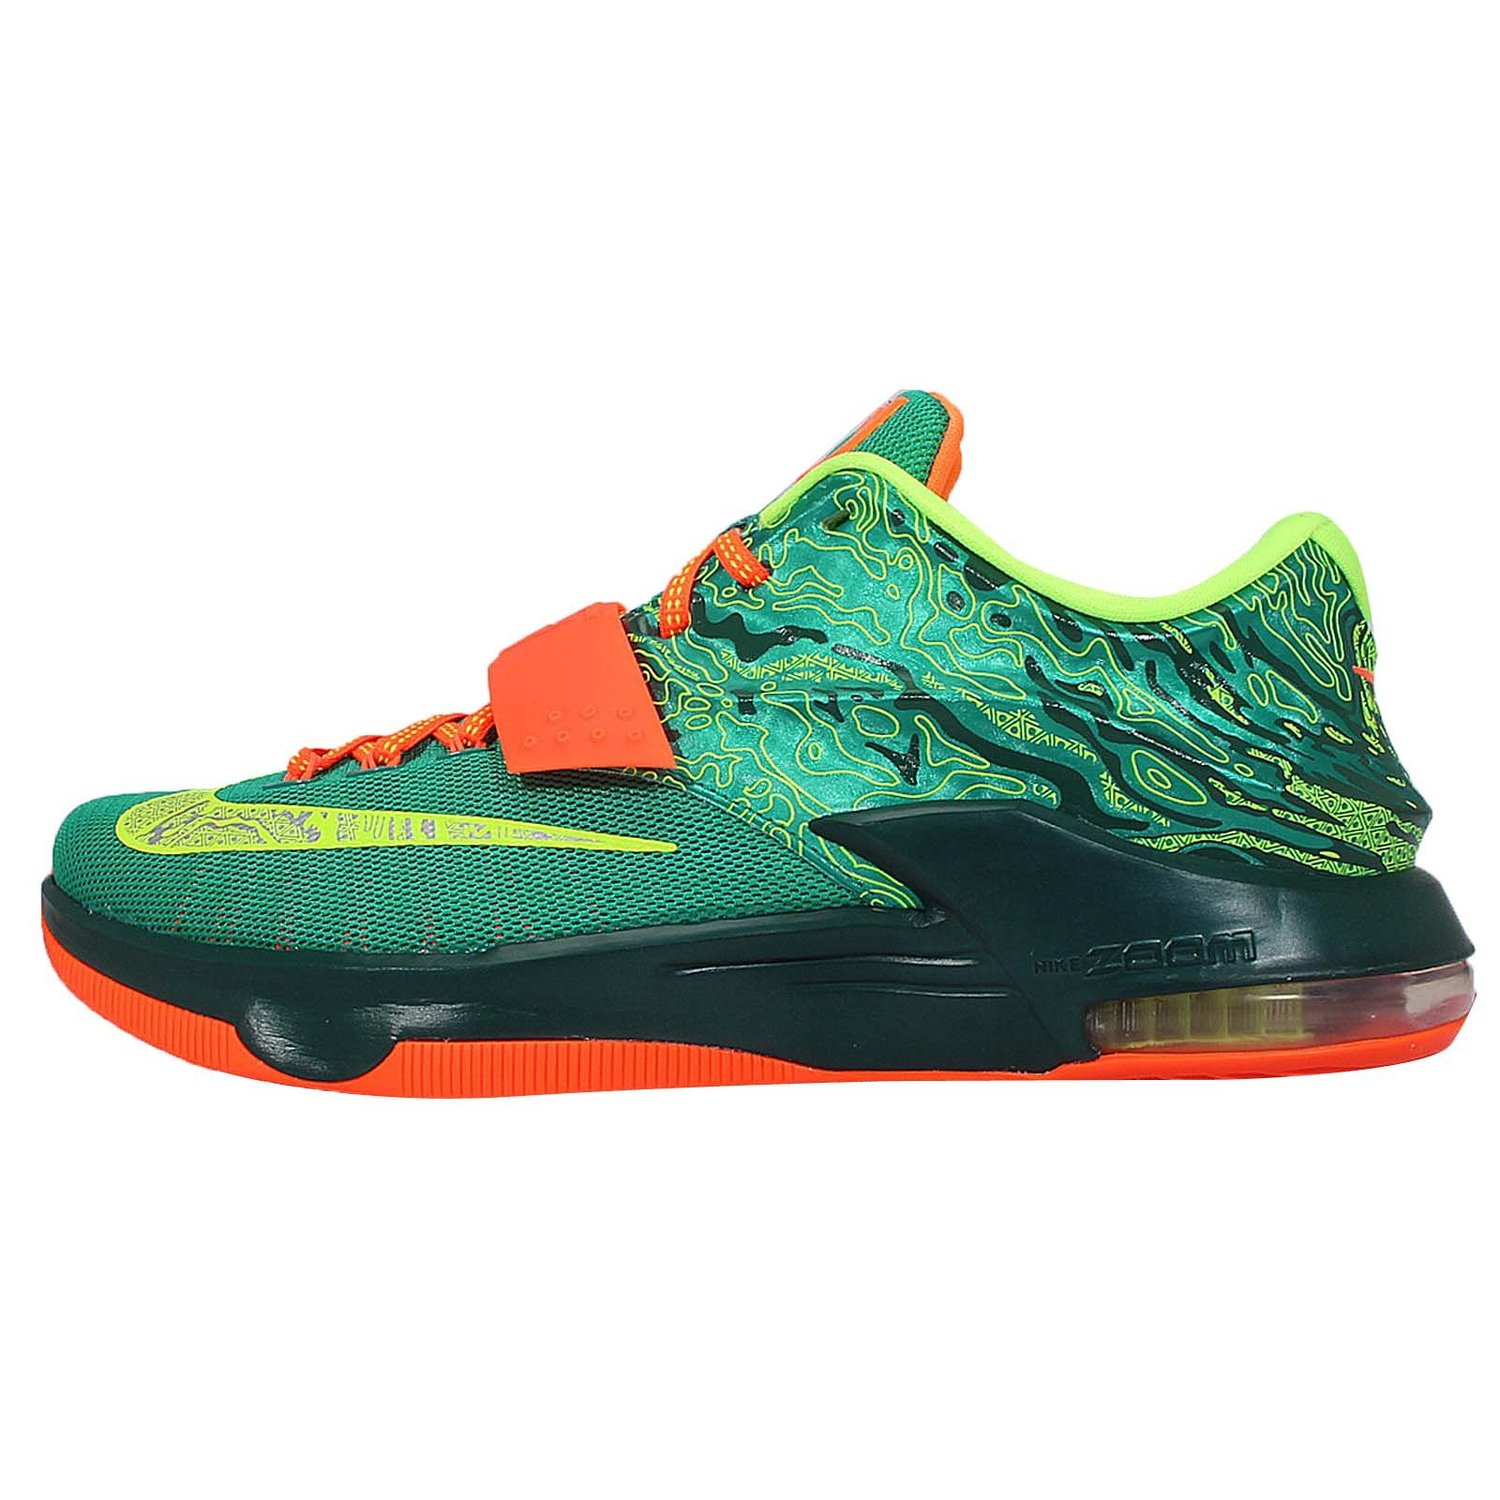 34592a6885 Get Quotations · NIKE KD VII Kevin Durant Basketball Shoes 653997-303